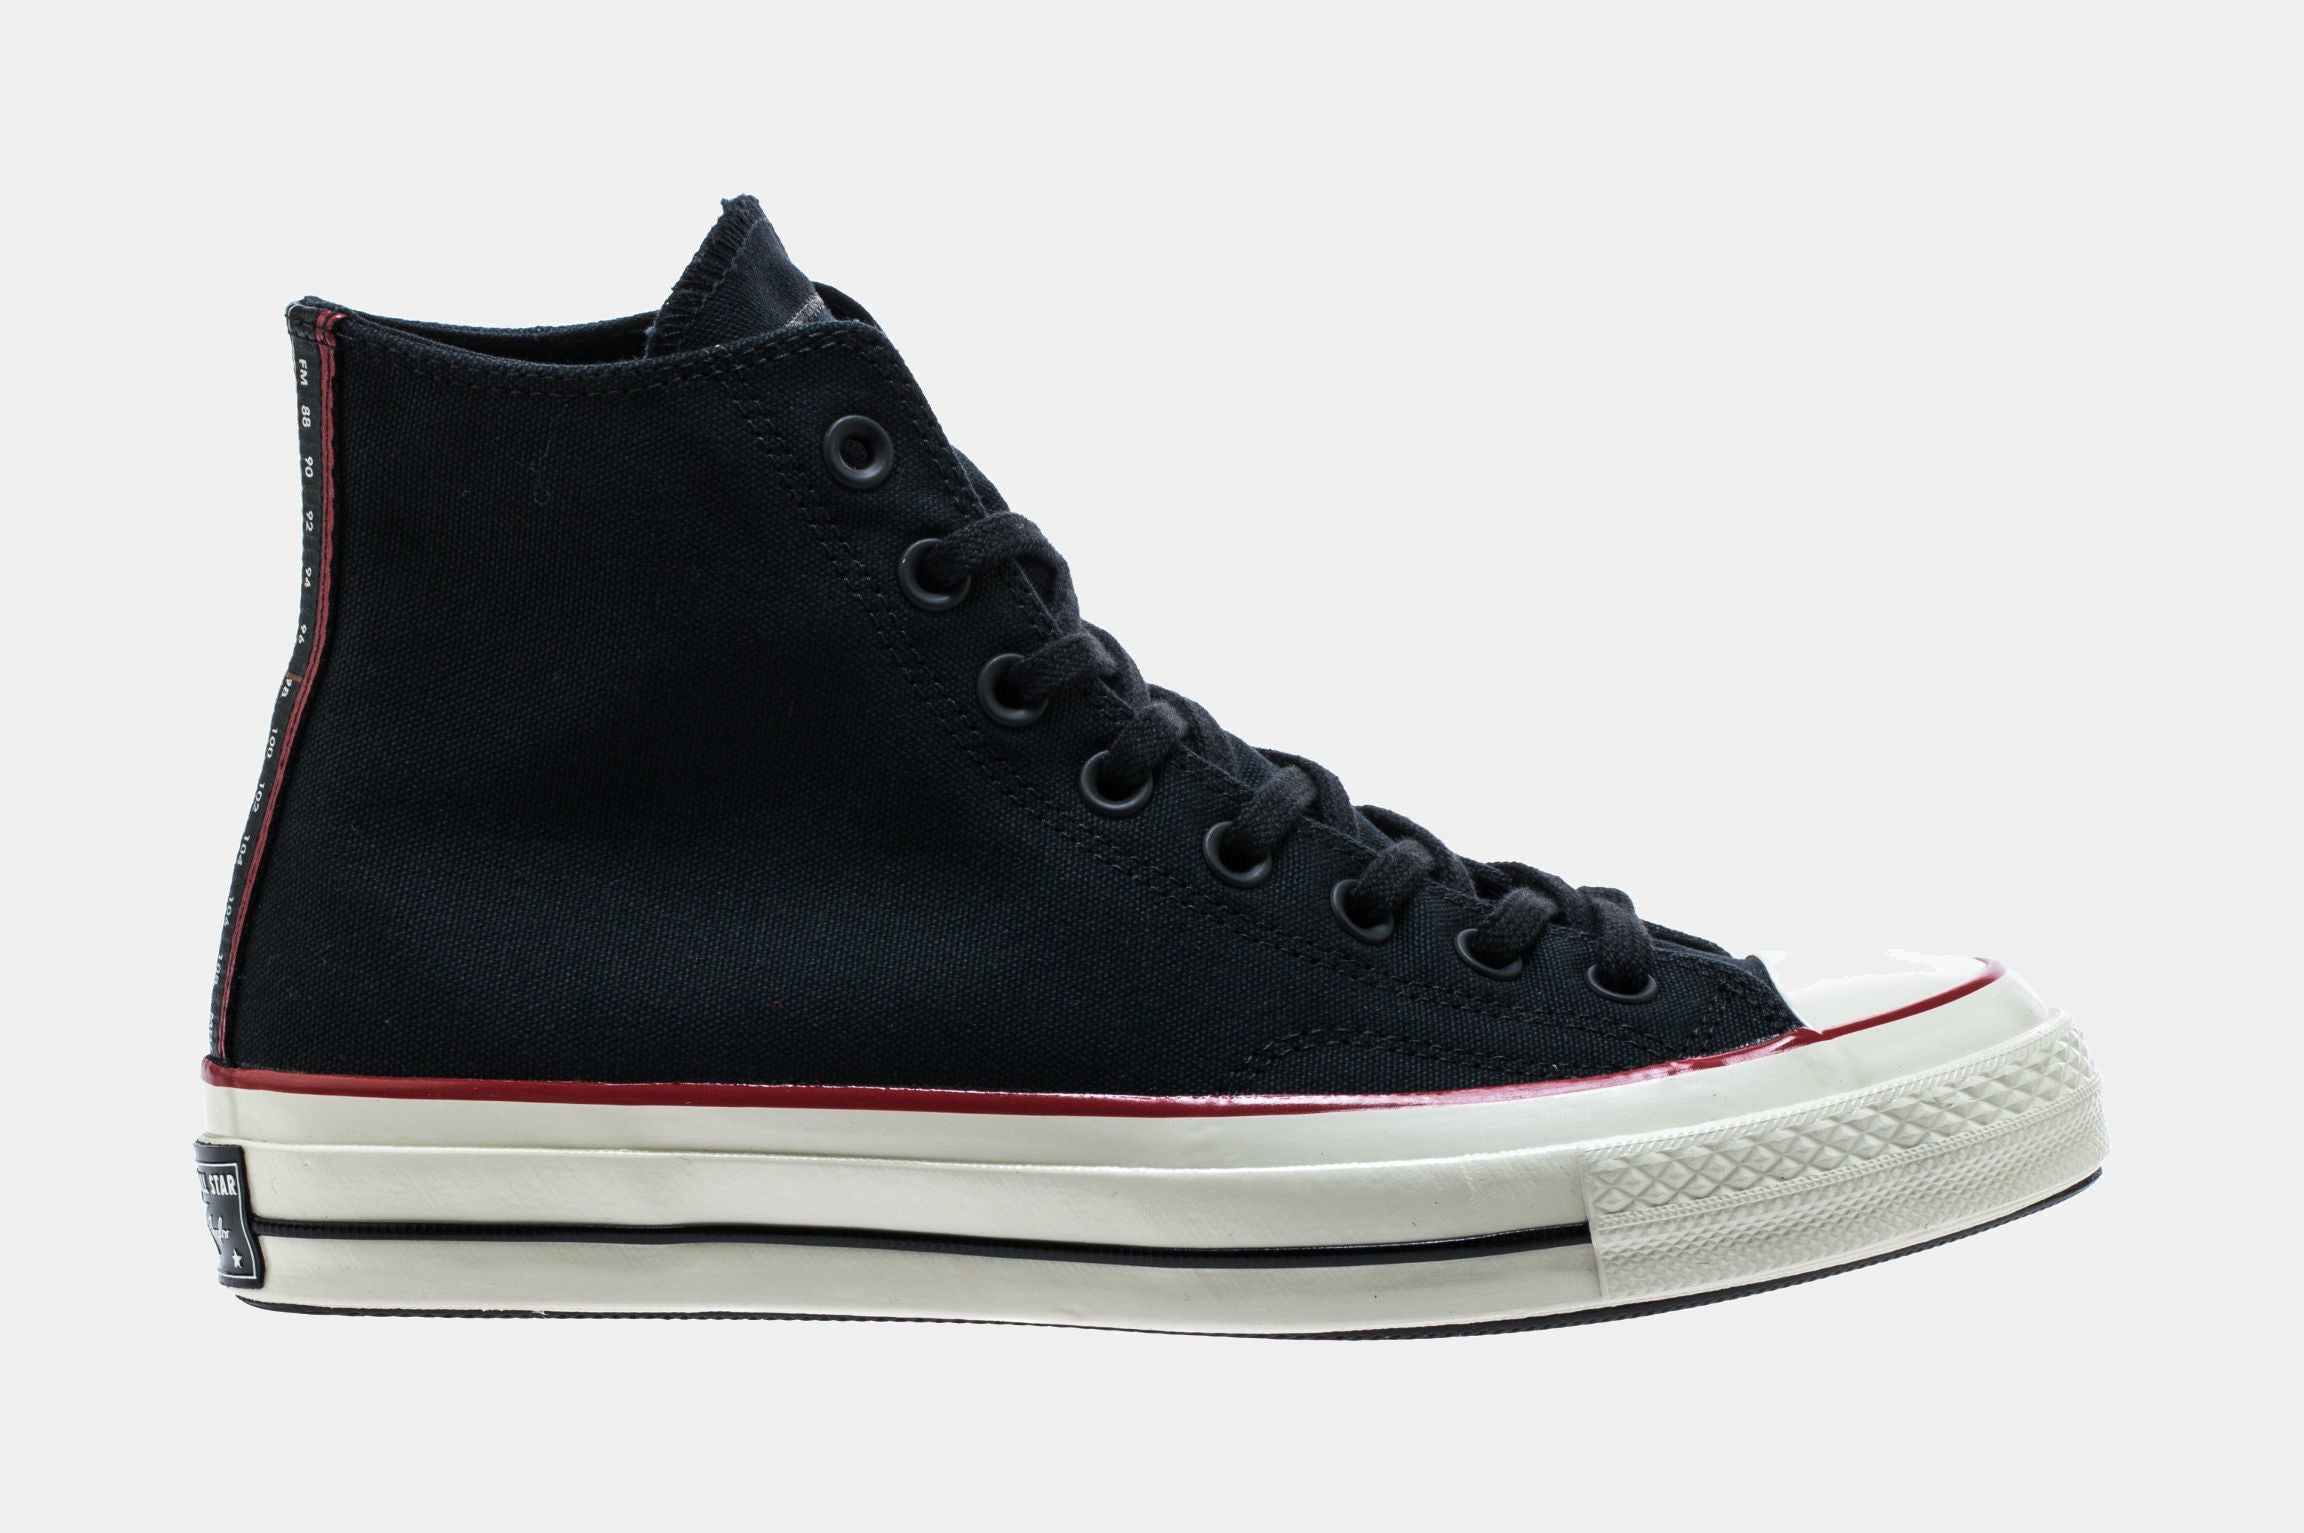 Shoe Palace X Converse Chuck Taylor All Star 70 HI Mens Lifestyle Shoe (Black/White) Free Shipping